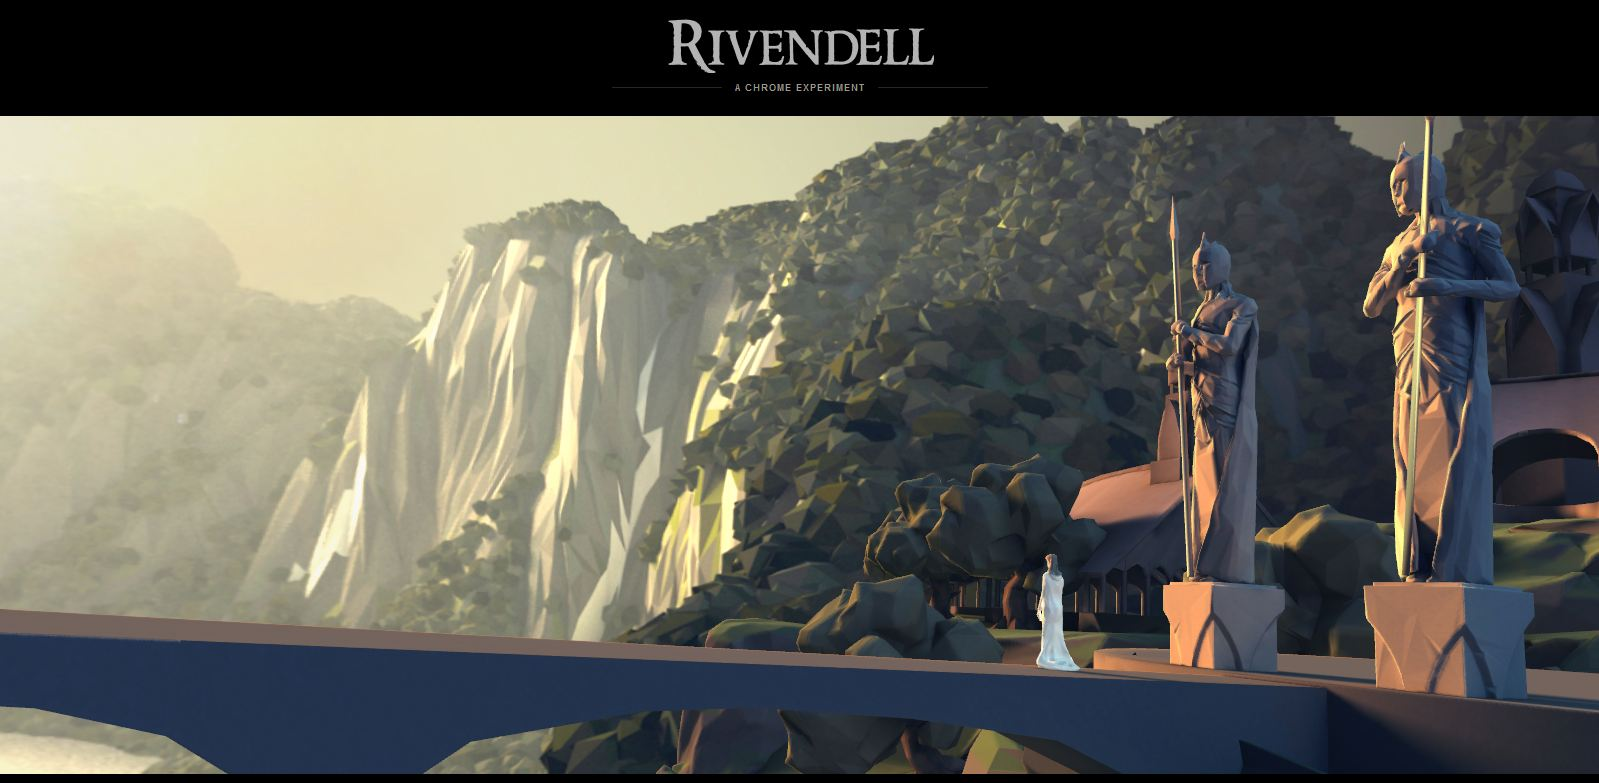 The Hobbit: The Desolation Of Smaug Google Chrome Experiment Rivendell Image